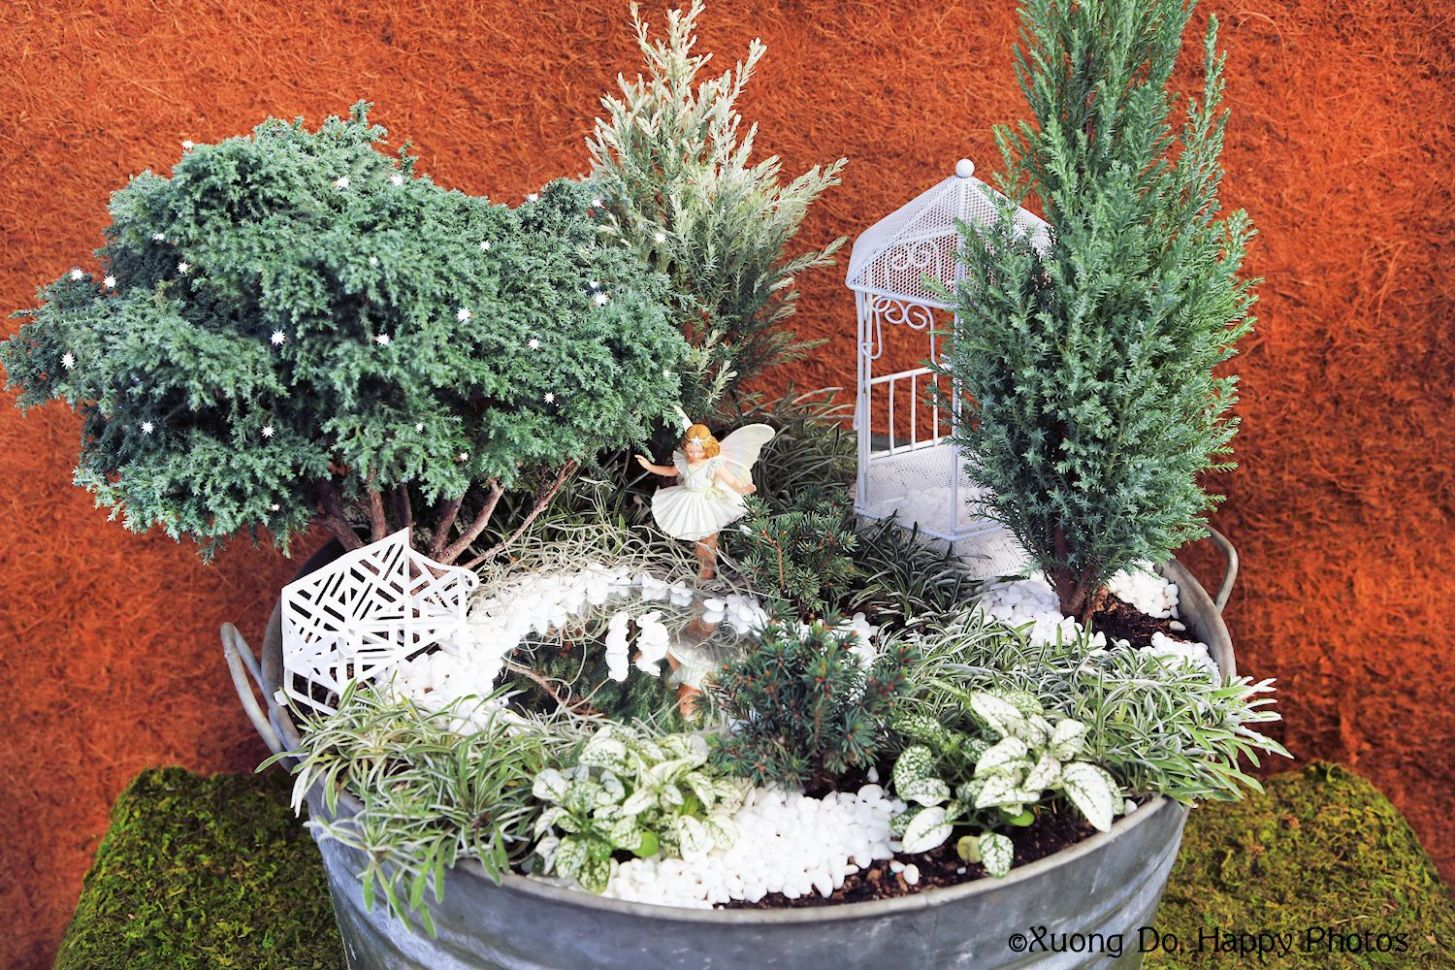 Fairy Gardens: Preparing Them for Winter plus Book Giveaway - garden ideas for winter